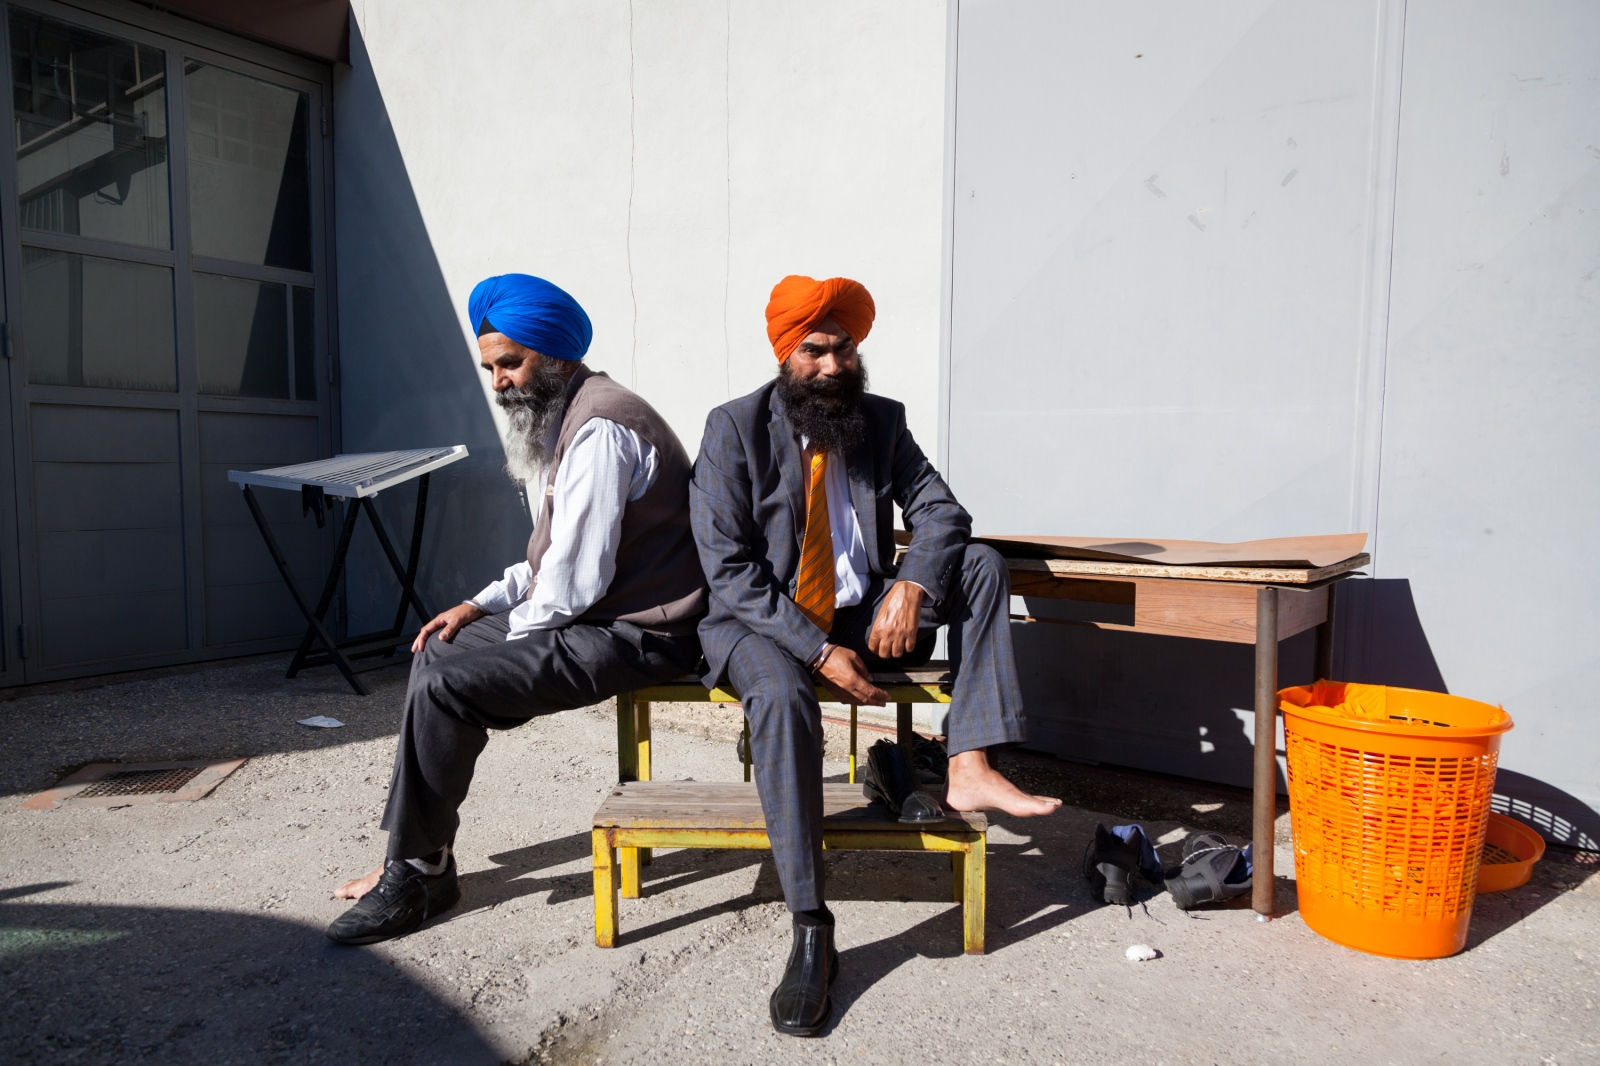 Two members of the Gurudwara Sri Gurunankdarbar, a Sikh temple just outside the ring road in the southeastern part of Rome, pose for a portrait after the Sunday celebration.